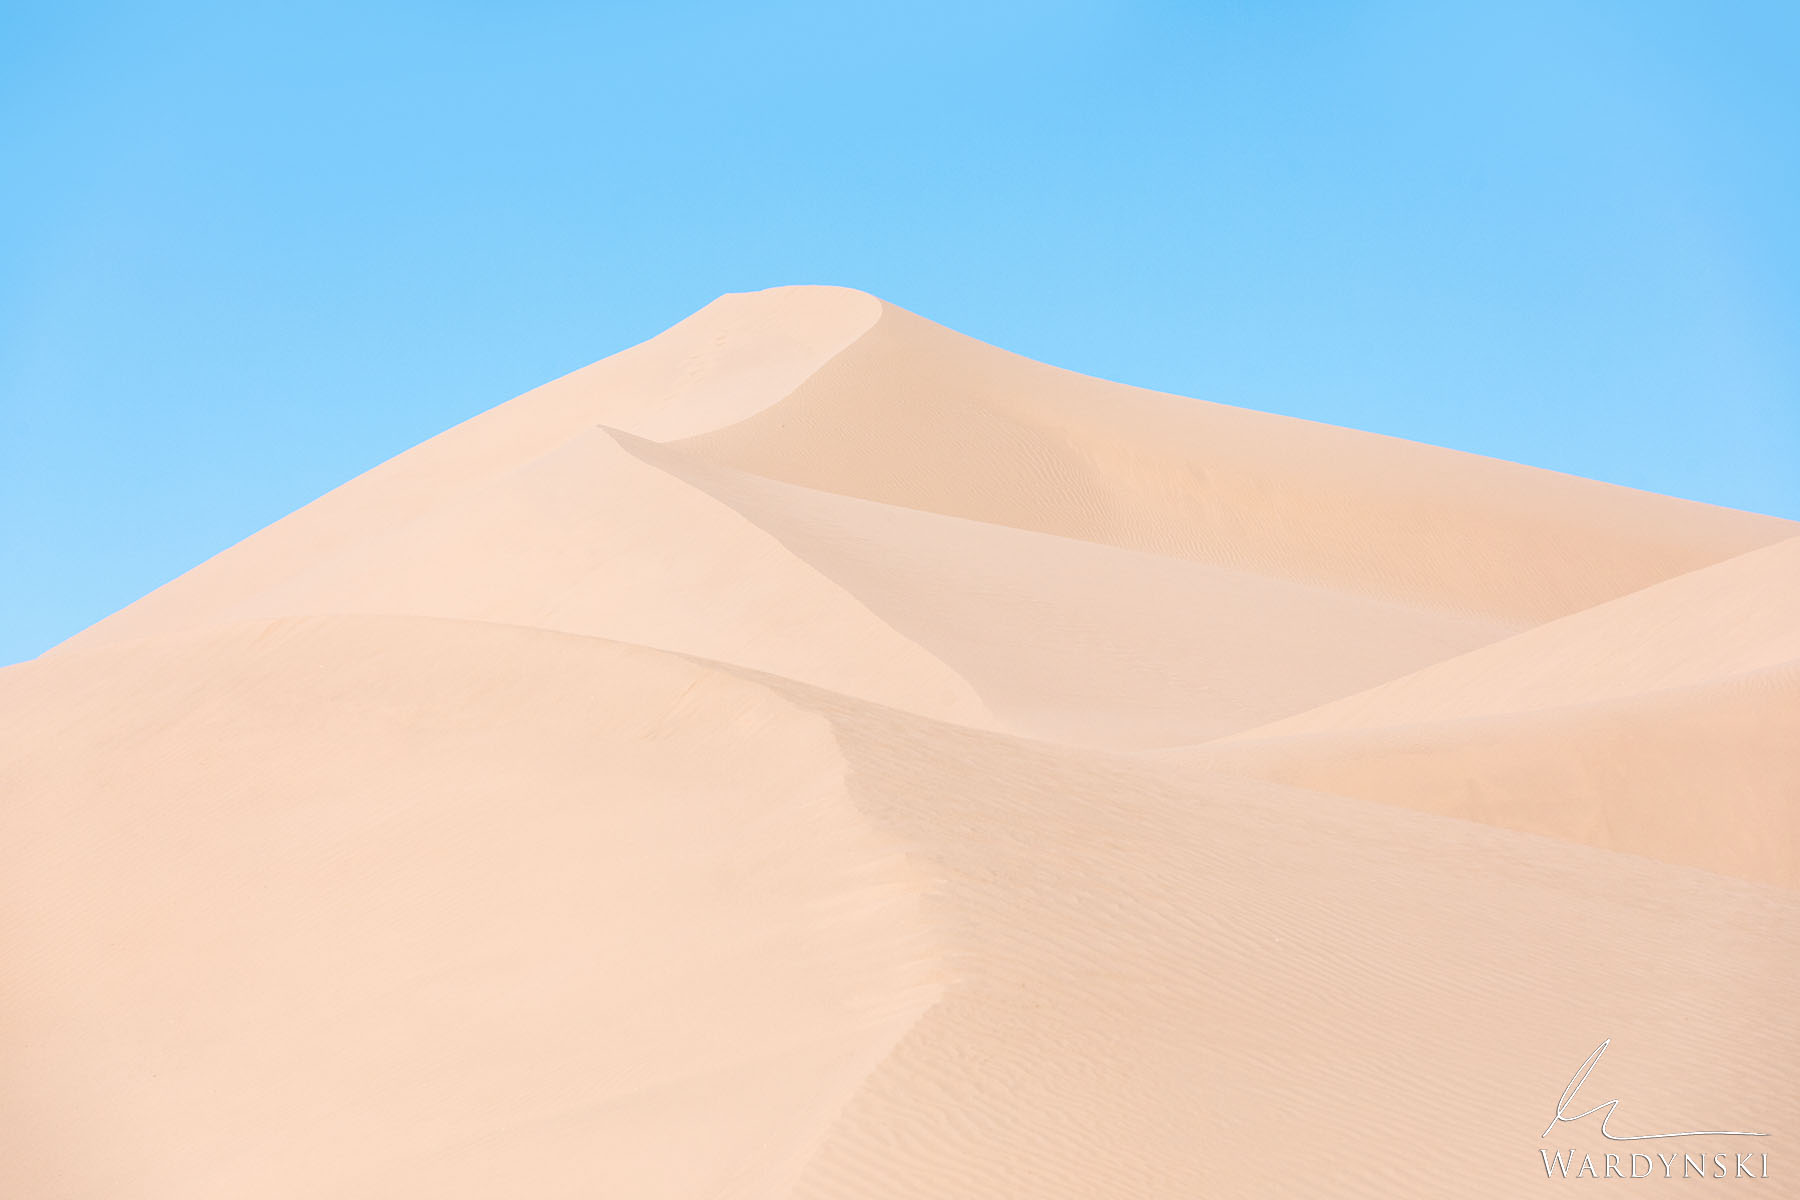 Fine Art Print | Limited Edition of 50  The Imperial Dunes of Southern California is the largest collection of sand dunes in...